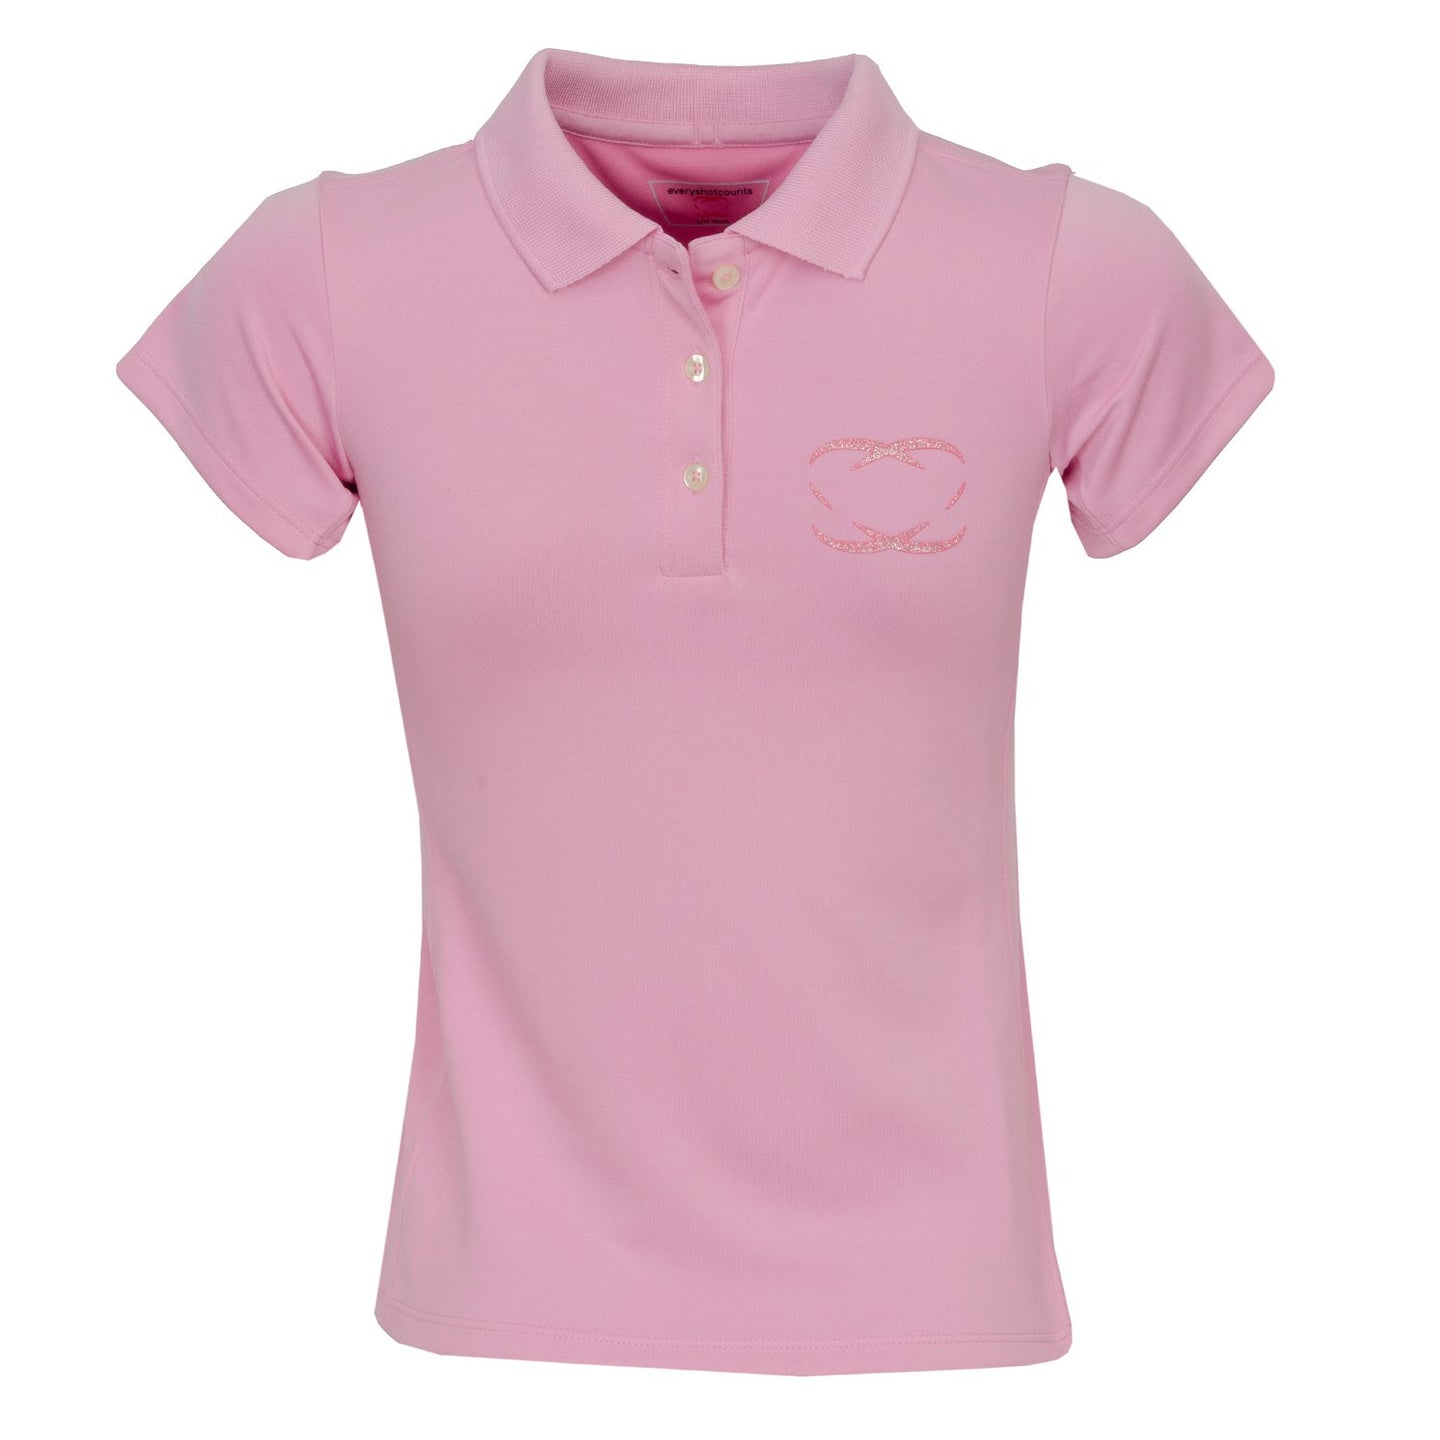 Every Shot Counts - Kingsbarns Girls Golf Polo Shirt (Pink)